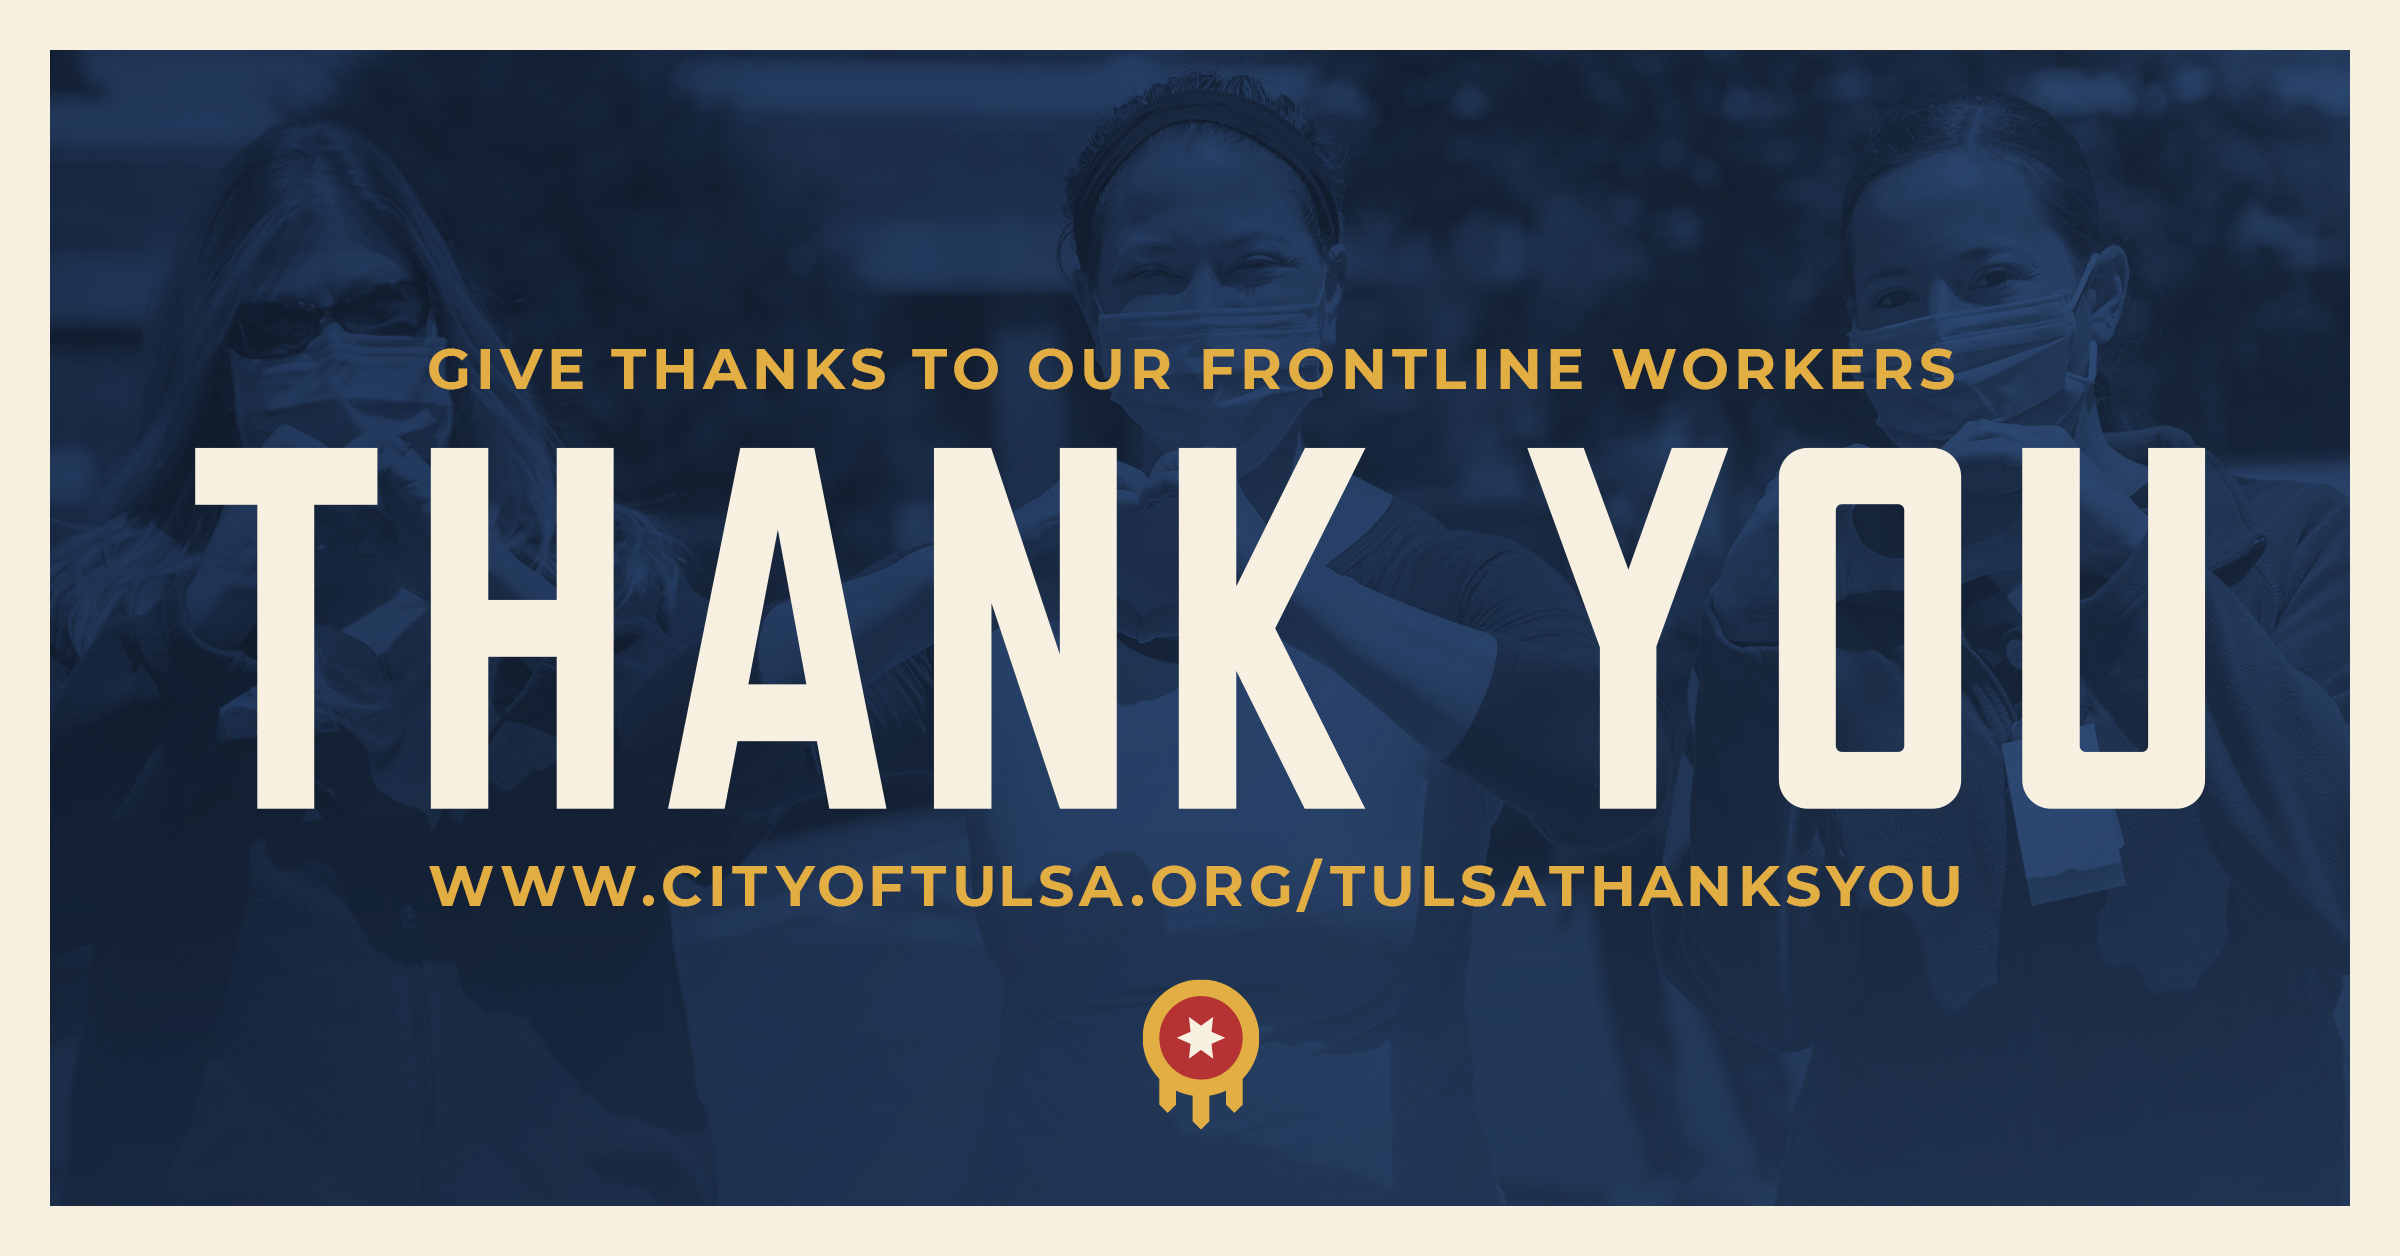 City Of Tulsa Announces 'Tulsa Thanks You' Video Project